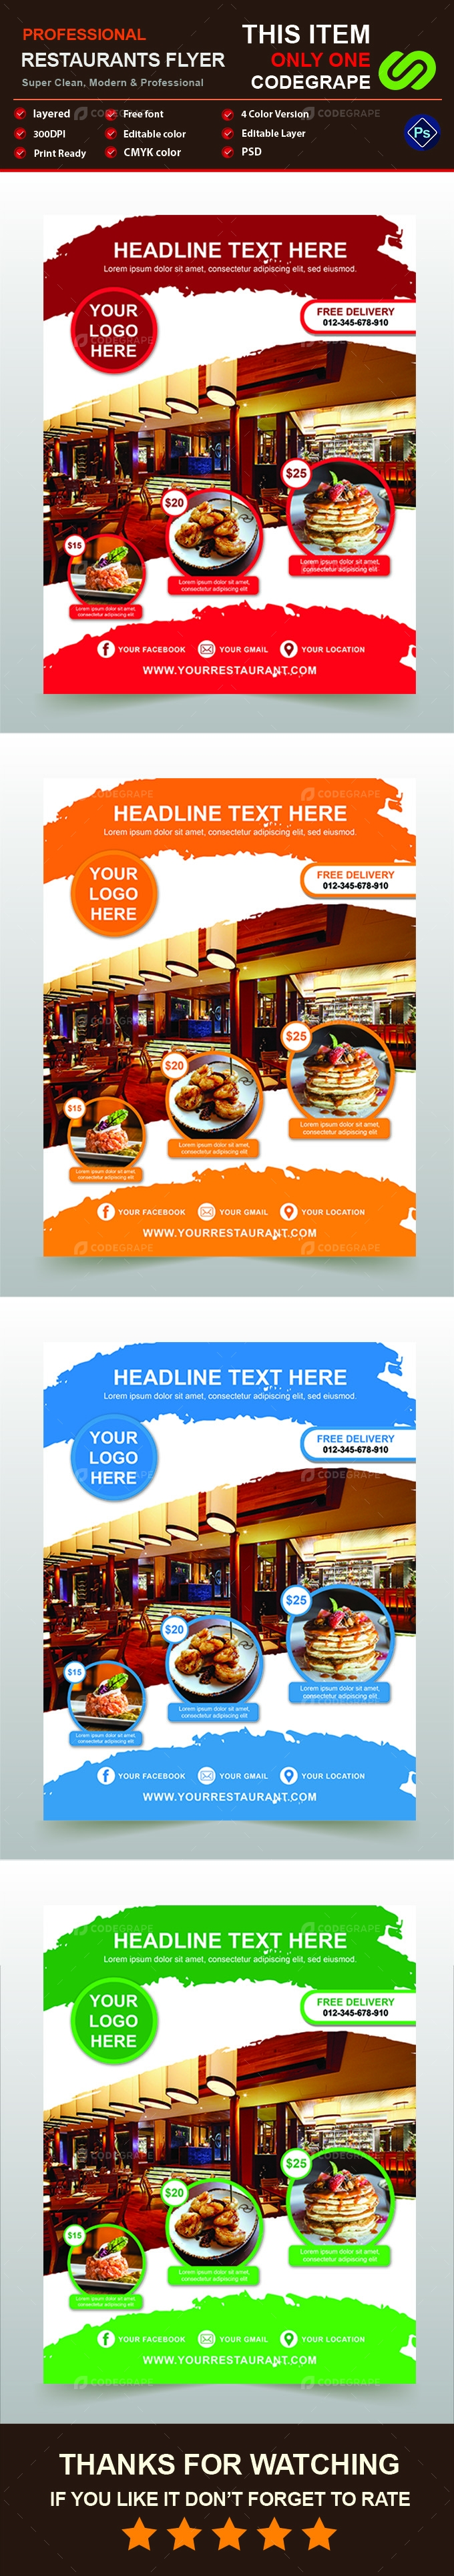 Restaurants Flyer Template